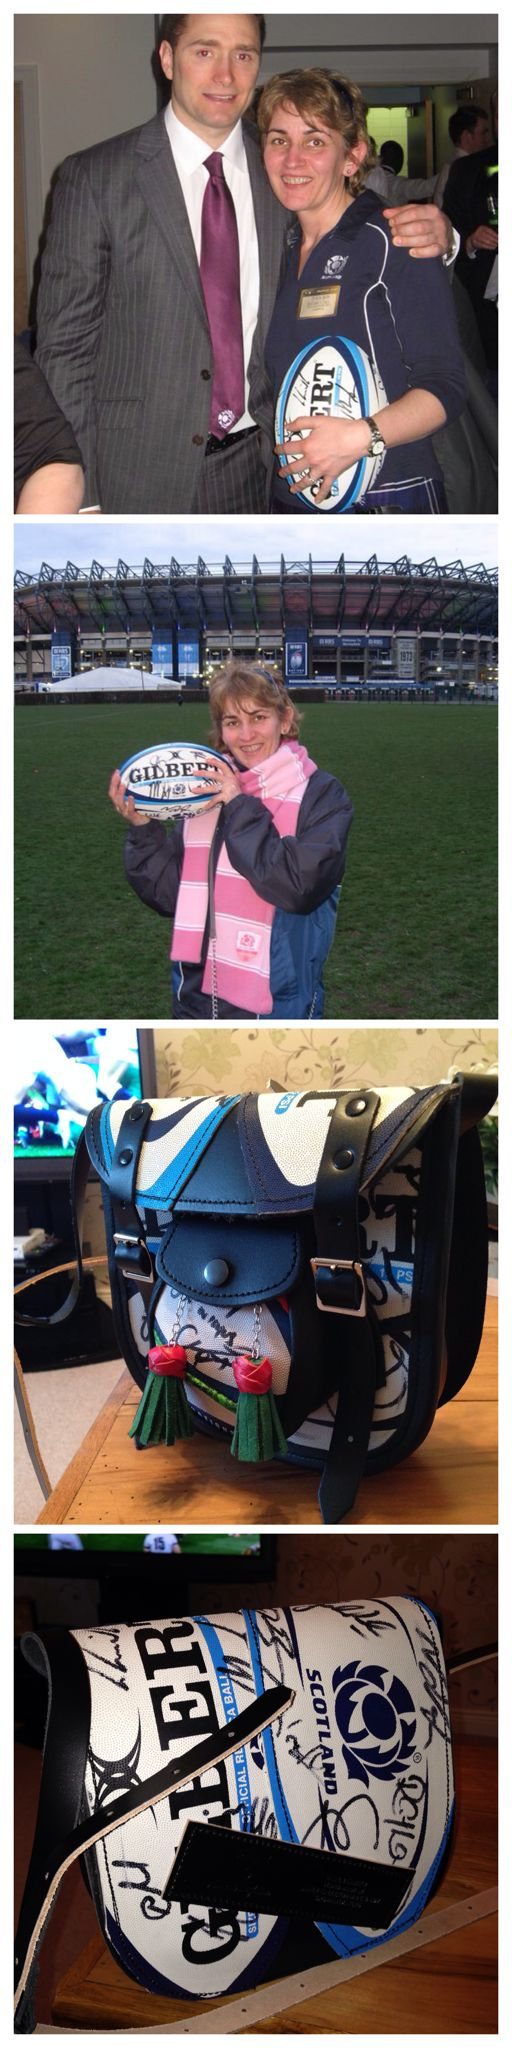 David and I won VIP tickets for Scotland v Italy at Murrayfield in March 2011. This is me with Dan Parks Scotland Rugby (and the signed rugby ball which I won on the day). You will see from the bottom two photos I've just had the ball made into a bag by Markus Bags. A truly one off hand-made bag and I love it!